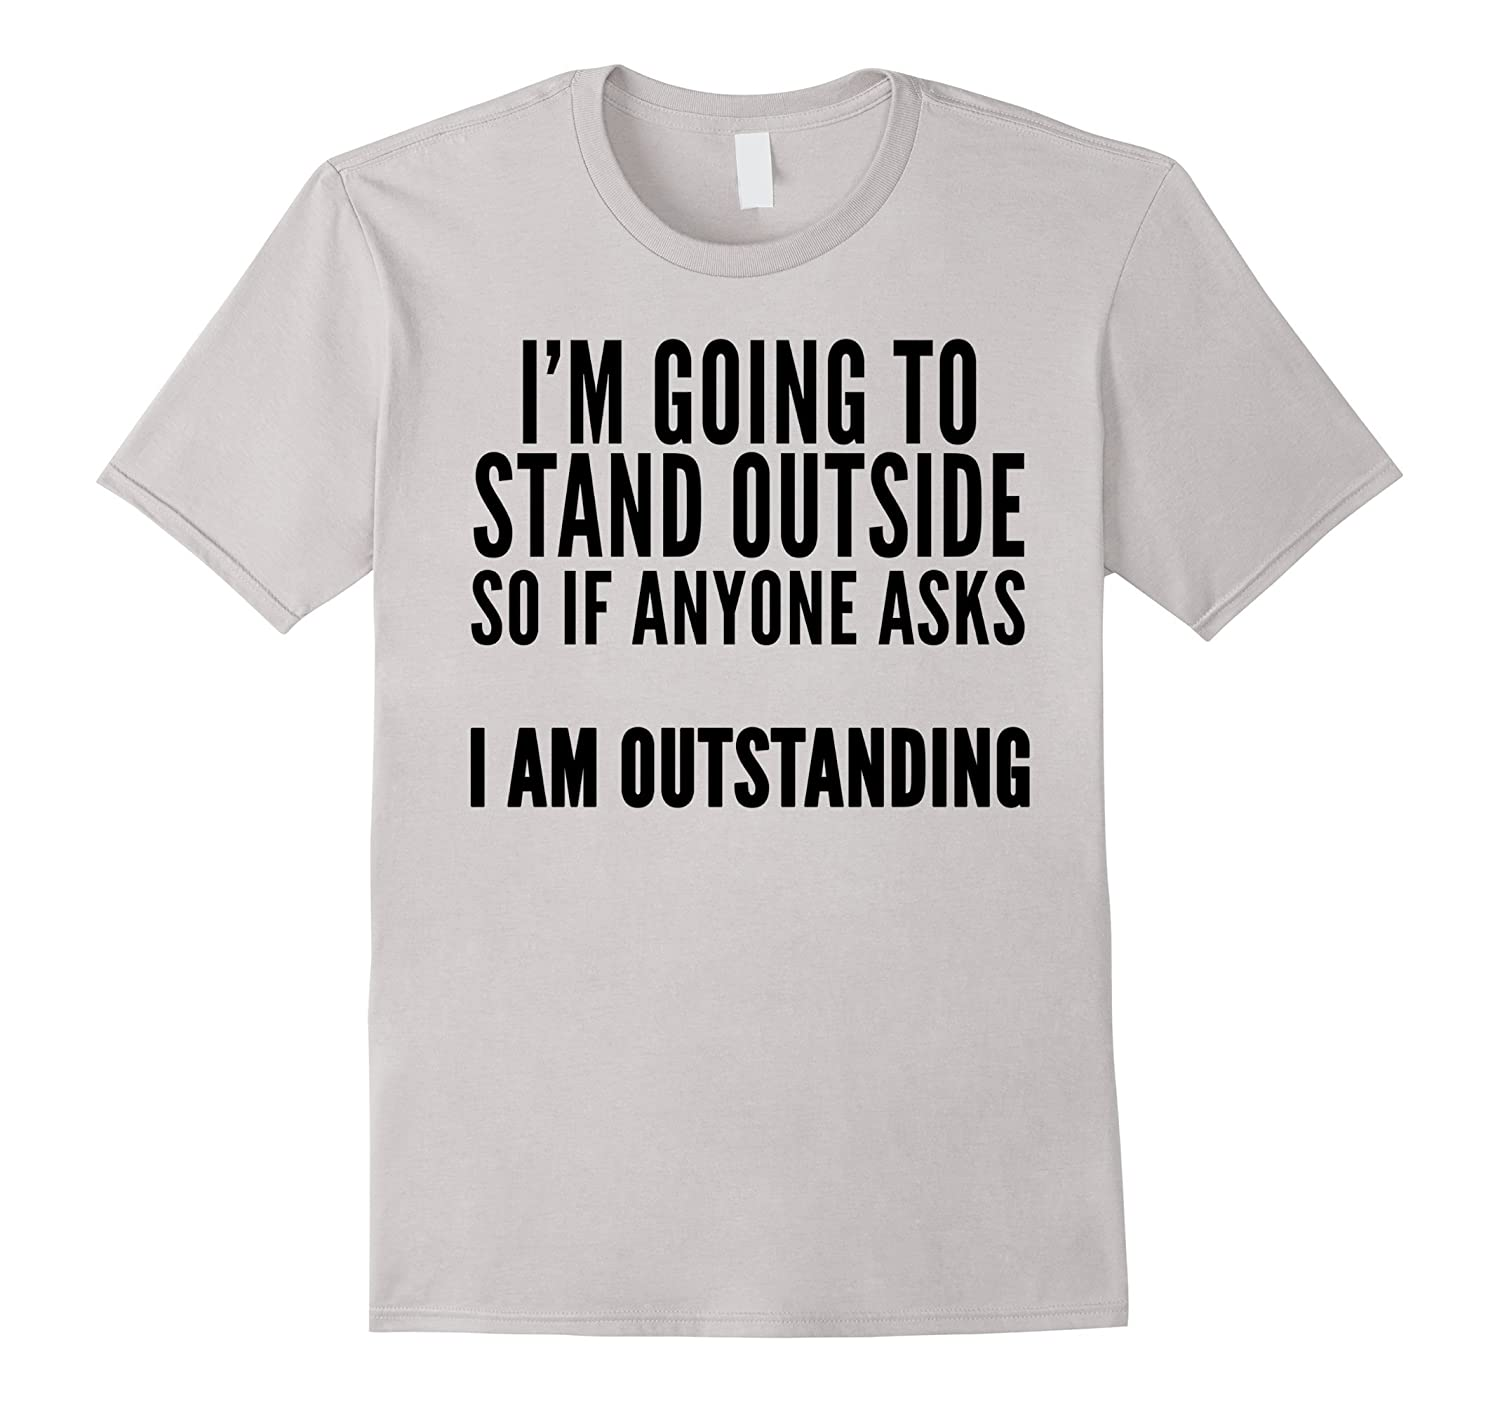 I am Outstanding - Funny Shirt for People Who Goes Outside-TH